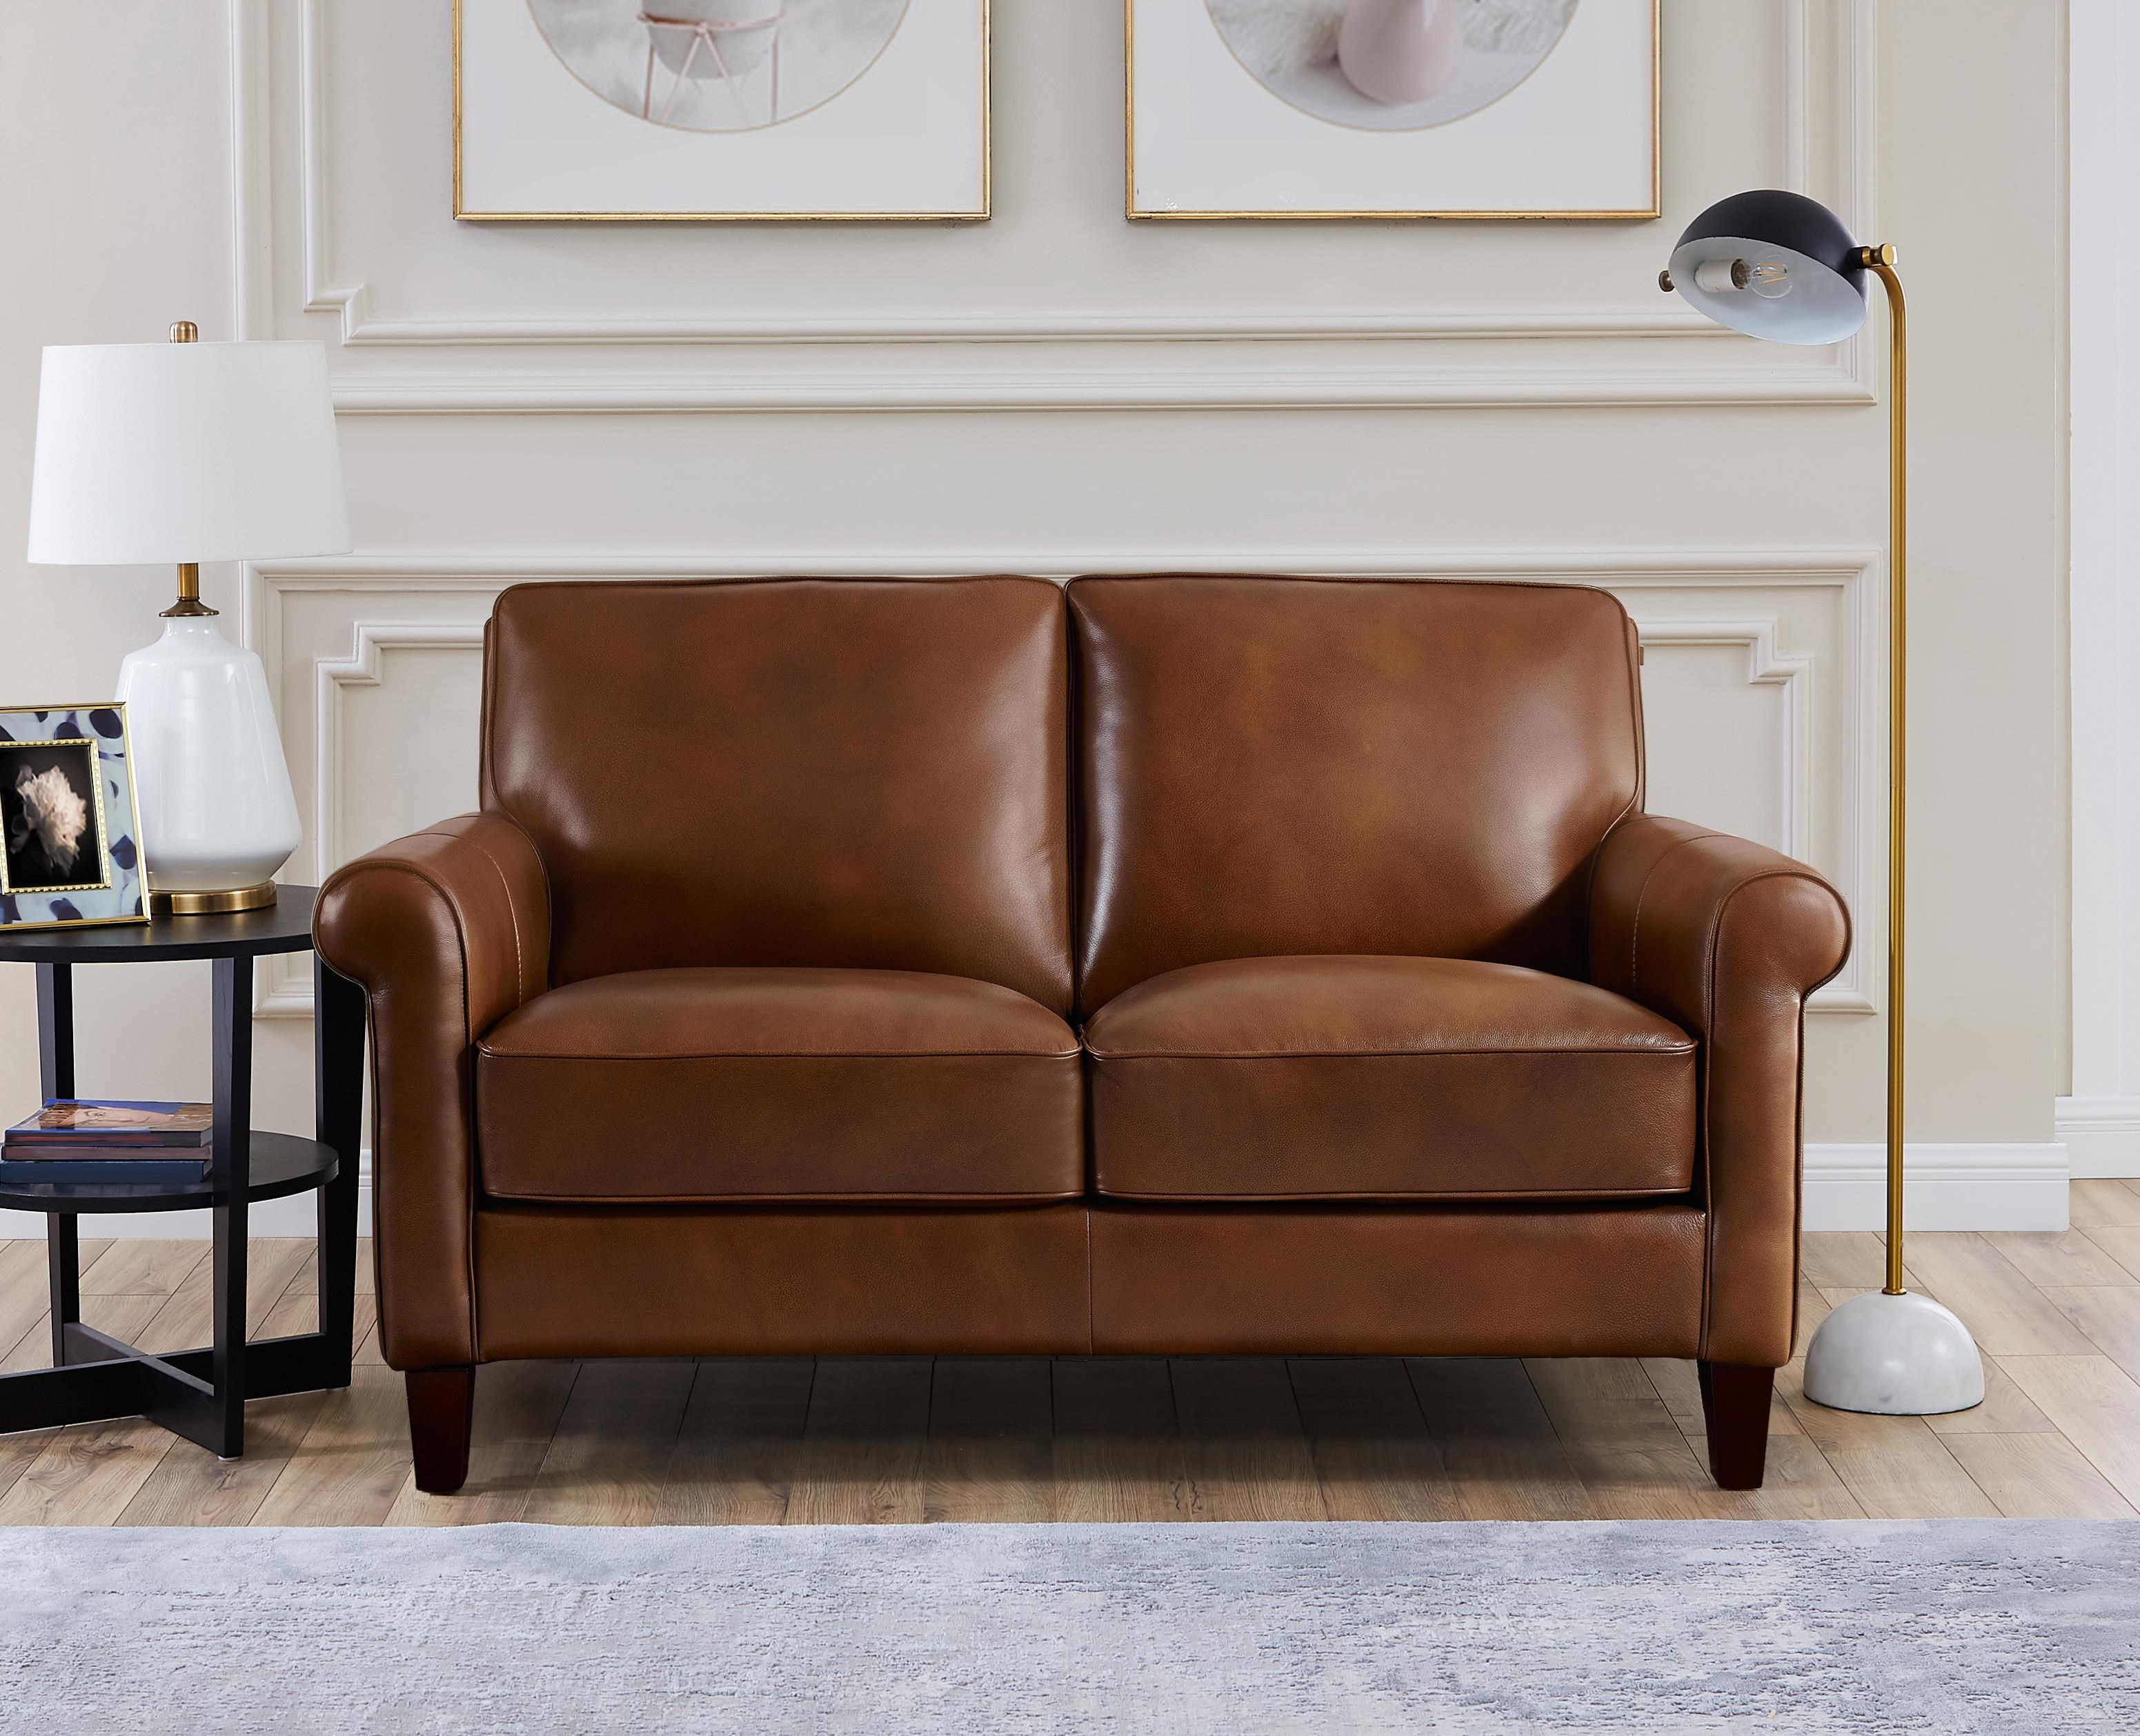 New London Dd New London Loveseat by Amax at Stoney Creek Furniture